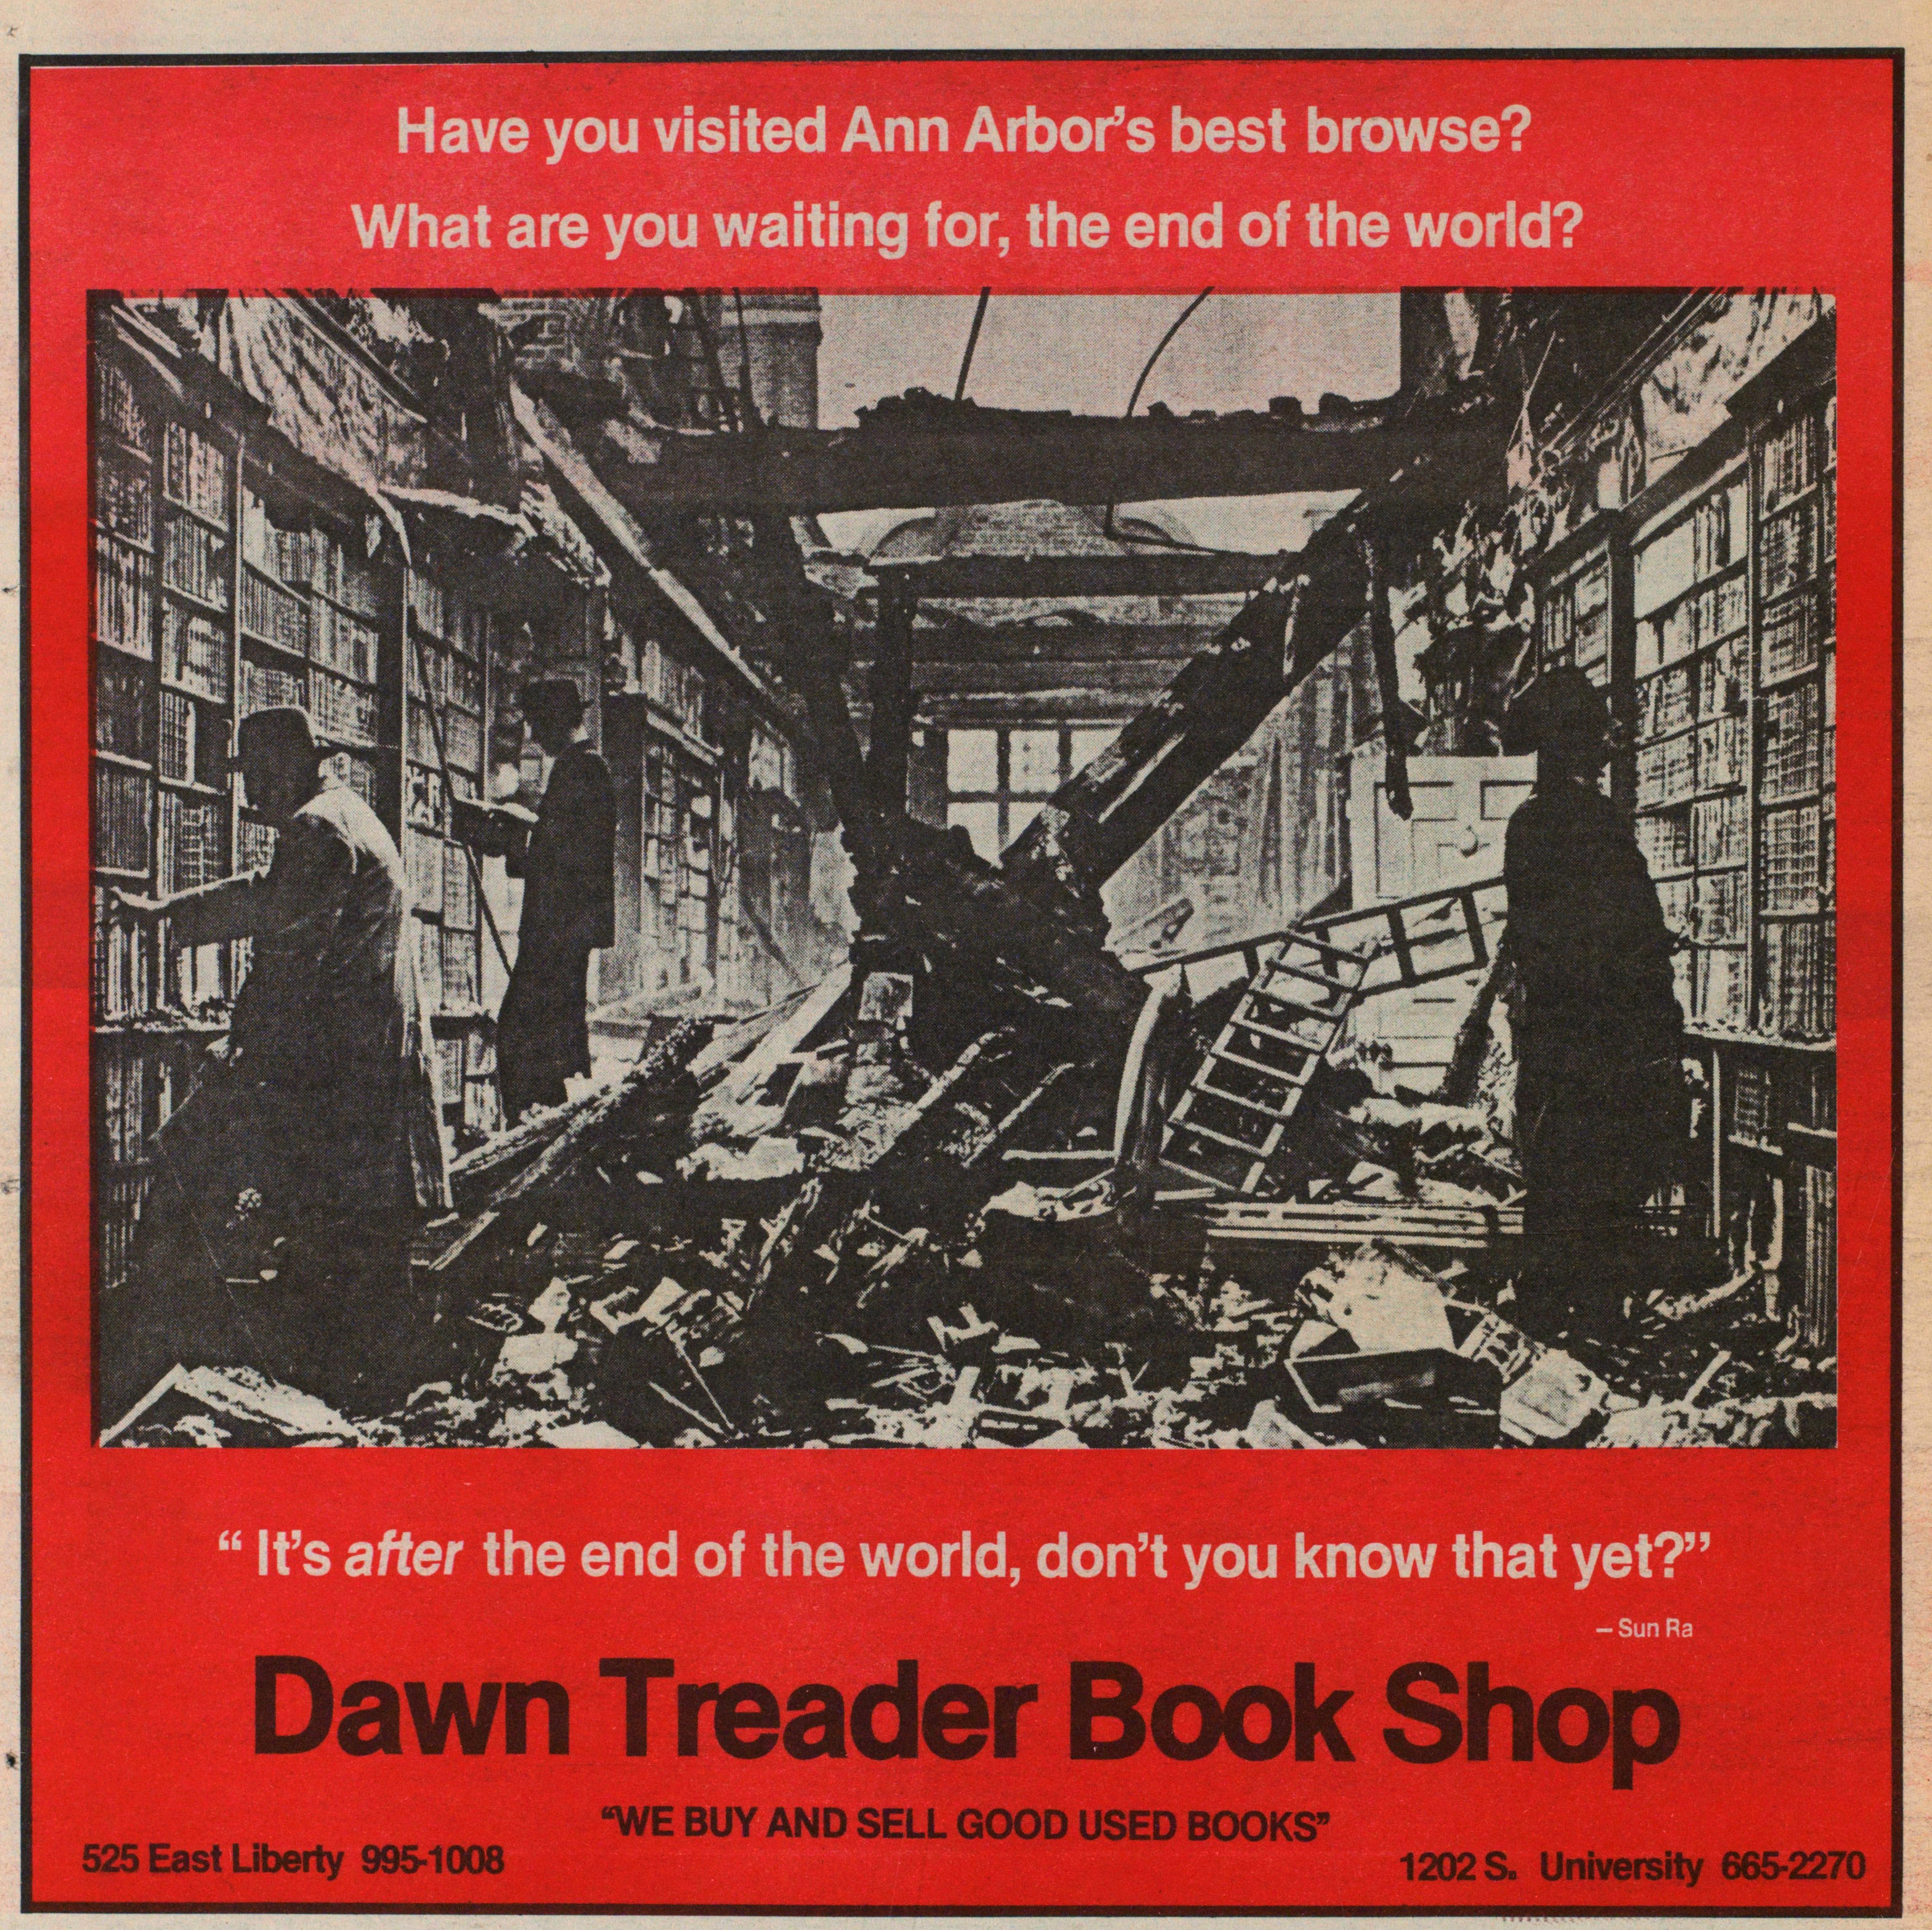 Dawn Treader Book Shop image